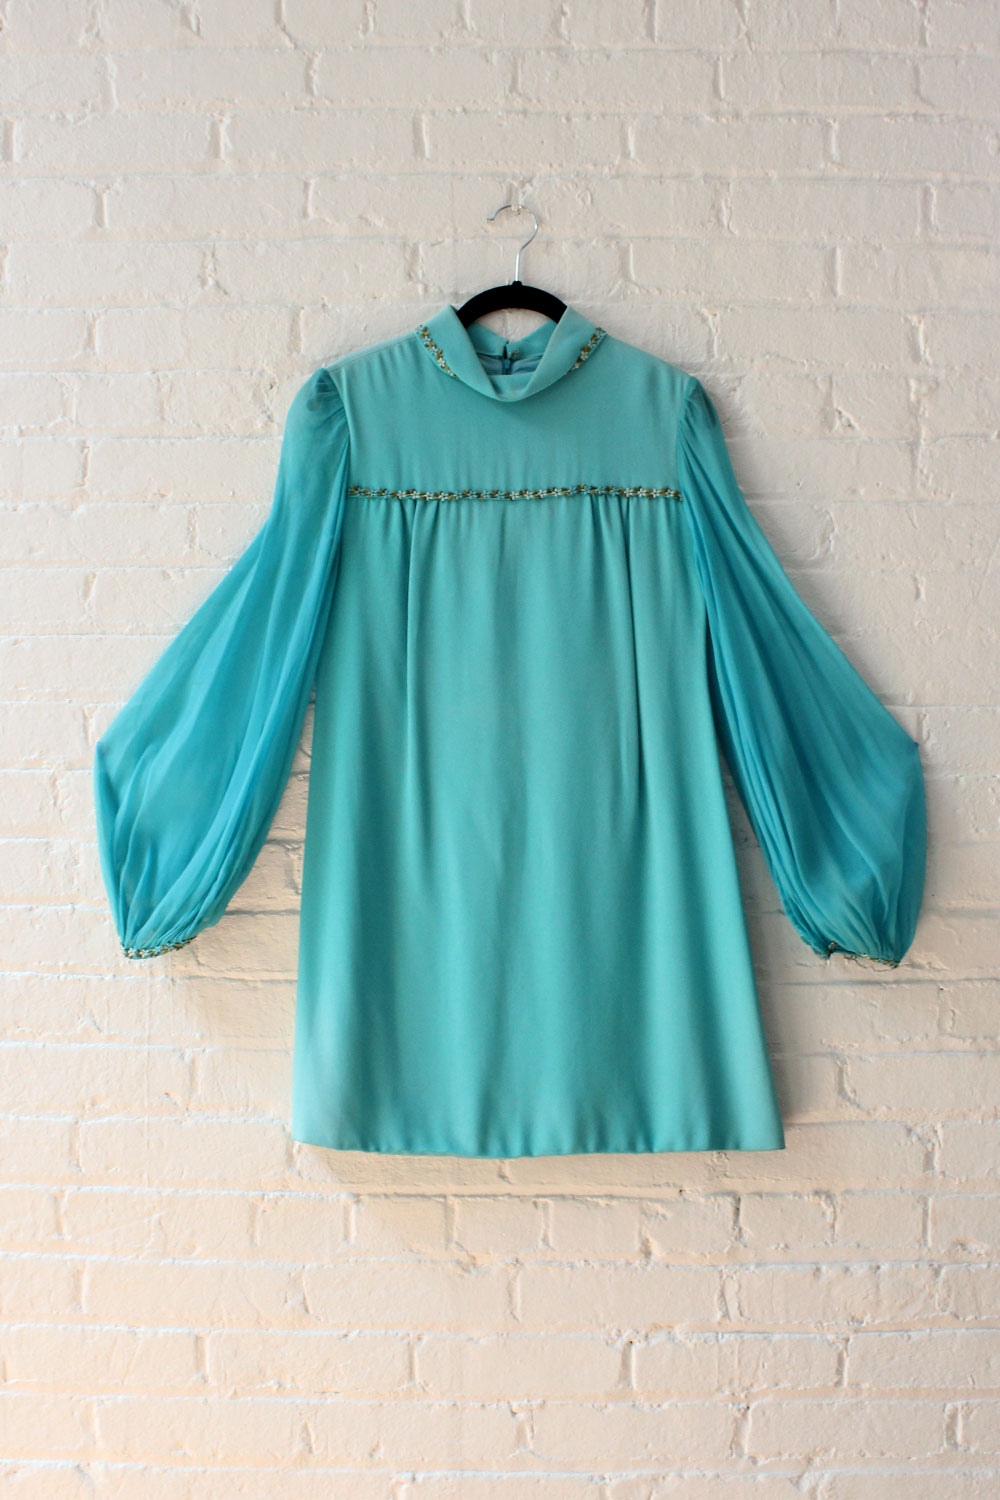 Aqua Chiffon Sleeve Mini Dress XS/S